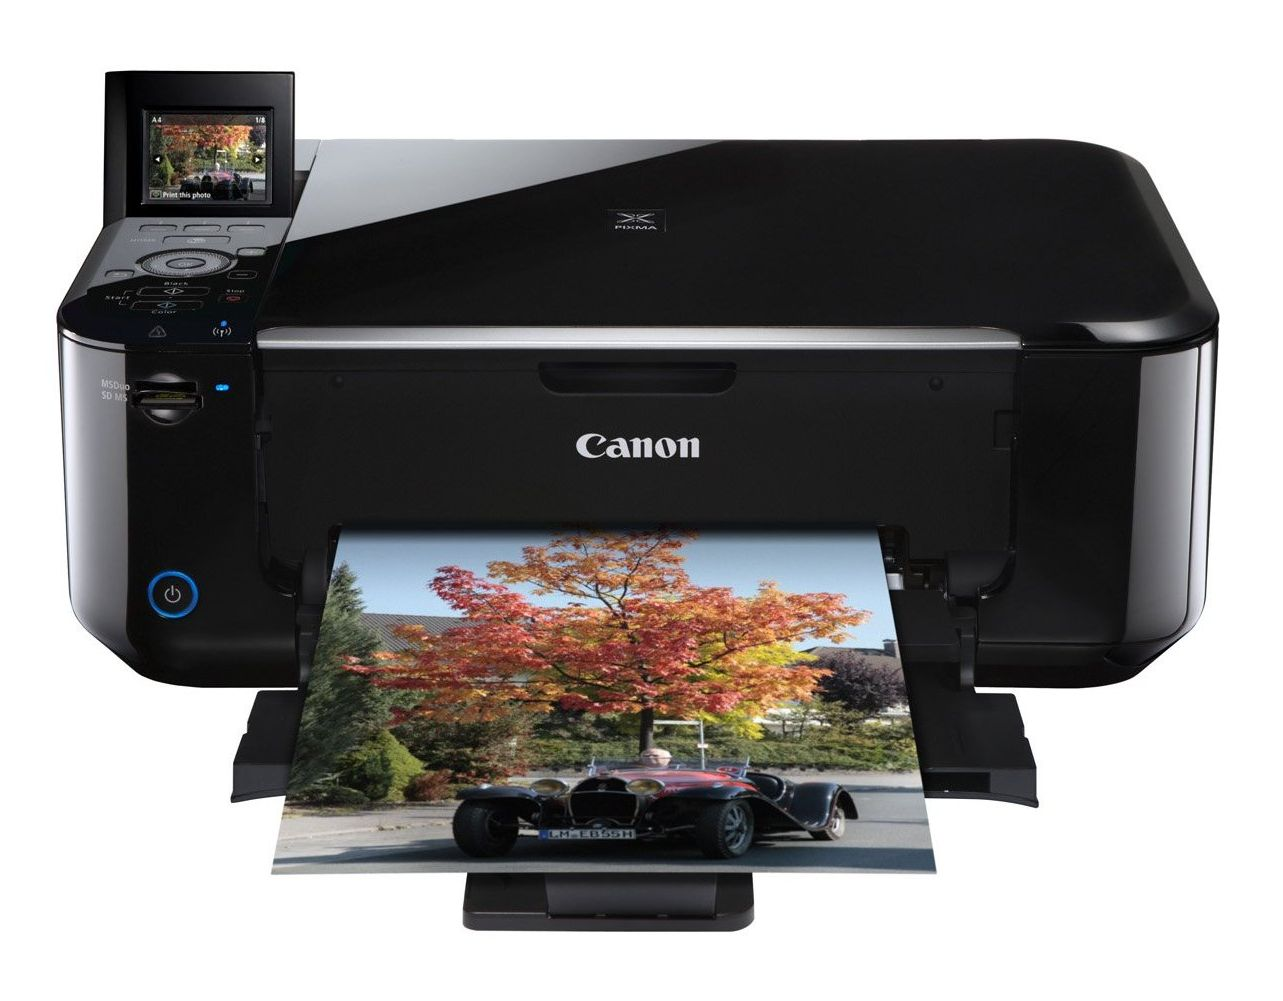 canon service center in kundrathur, canon printer service center in kundrathur